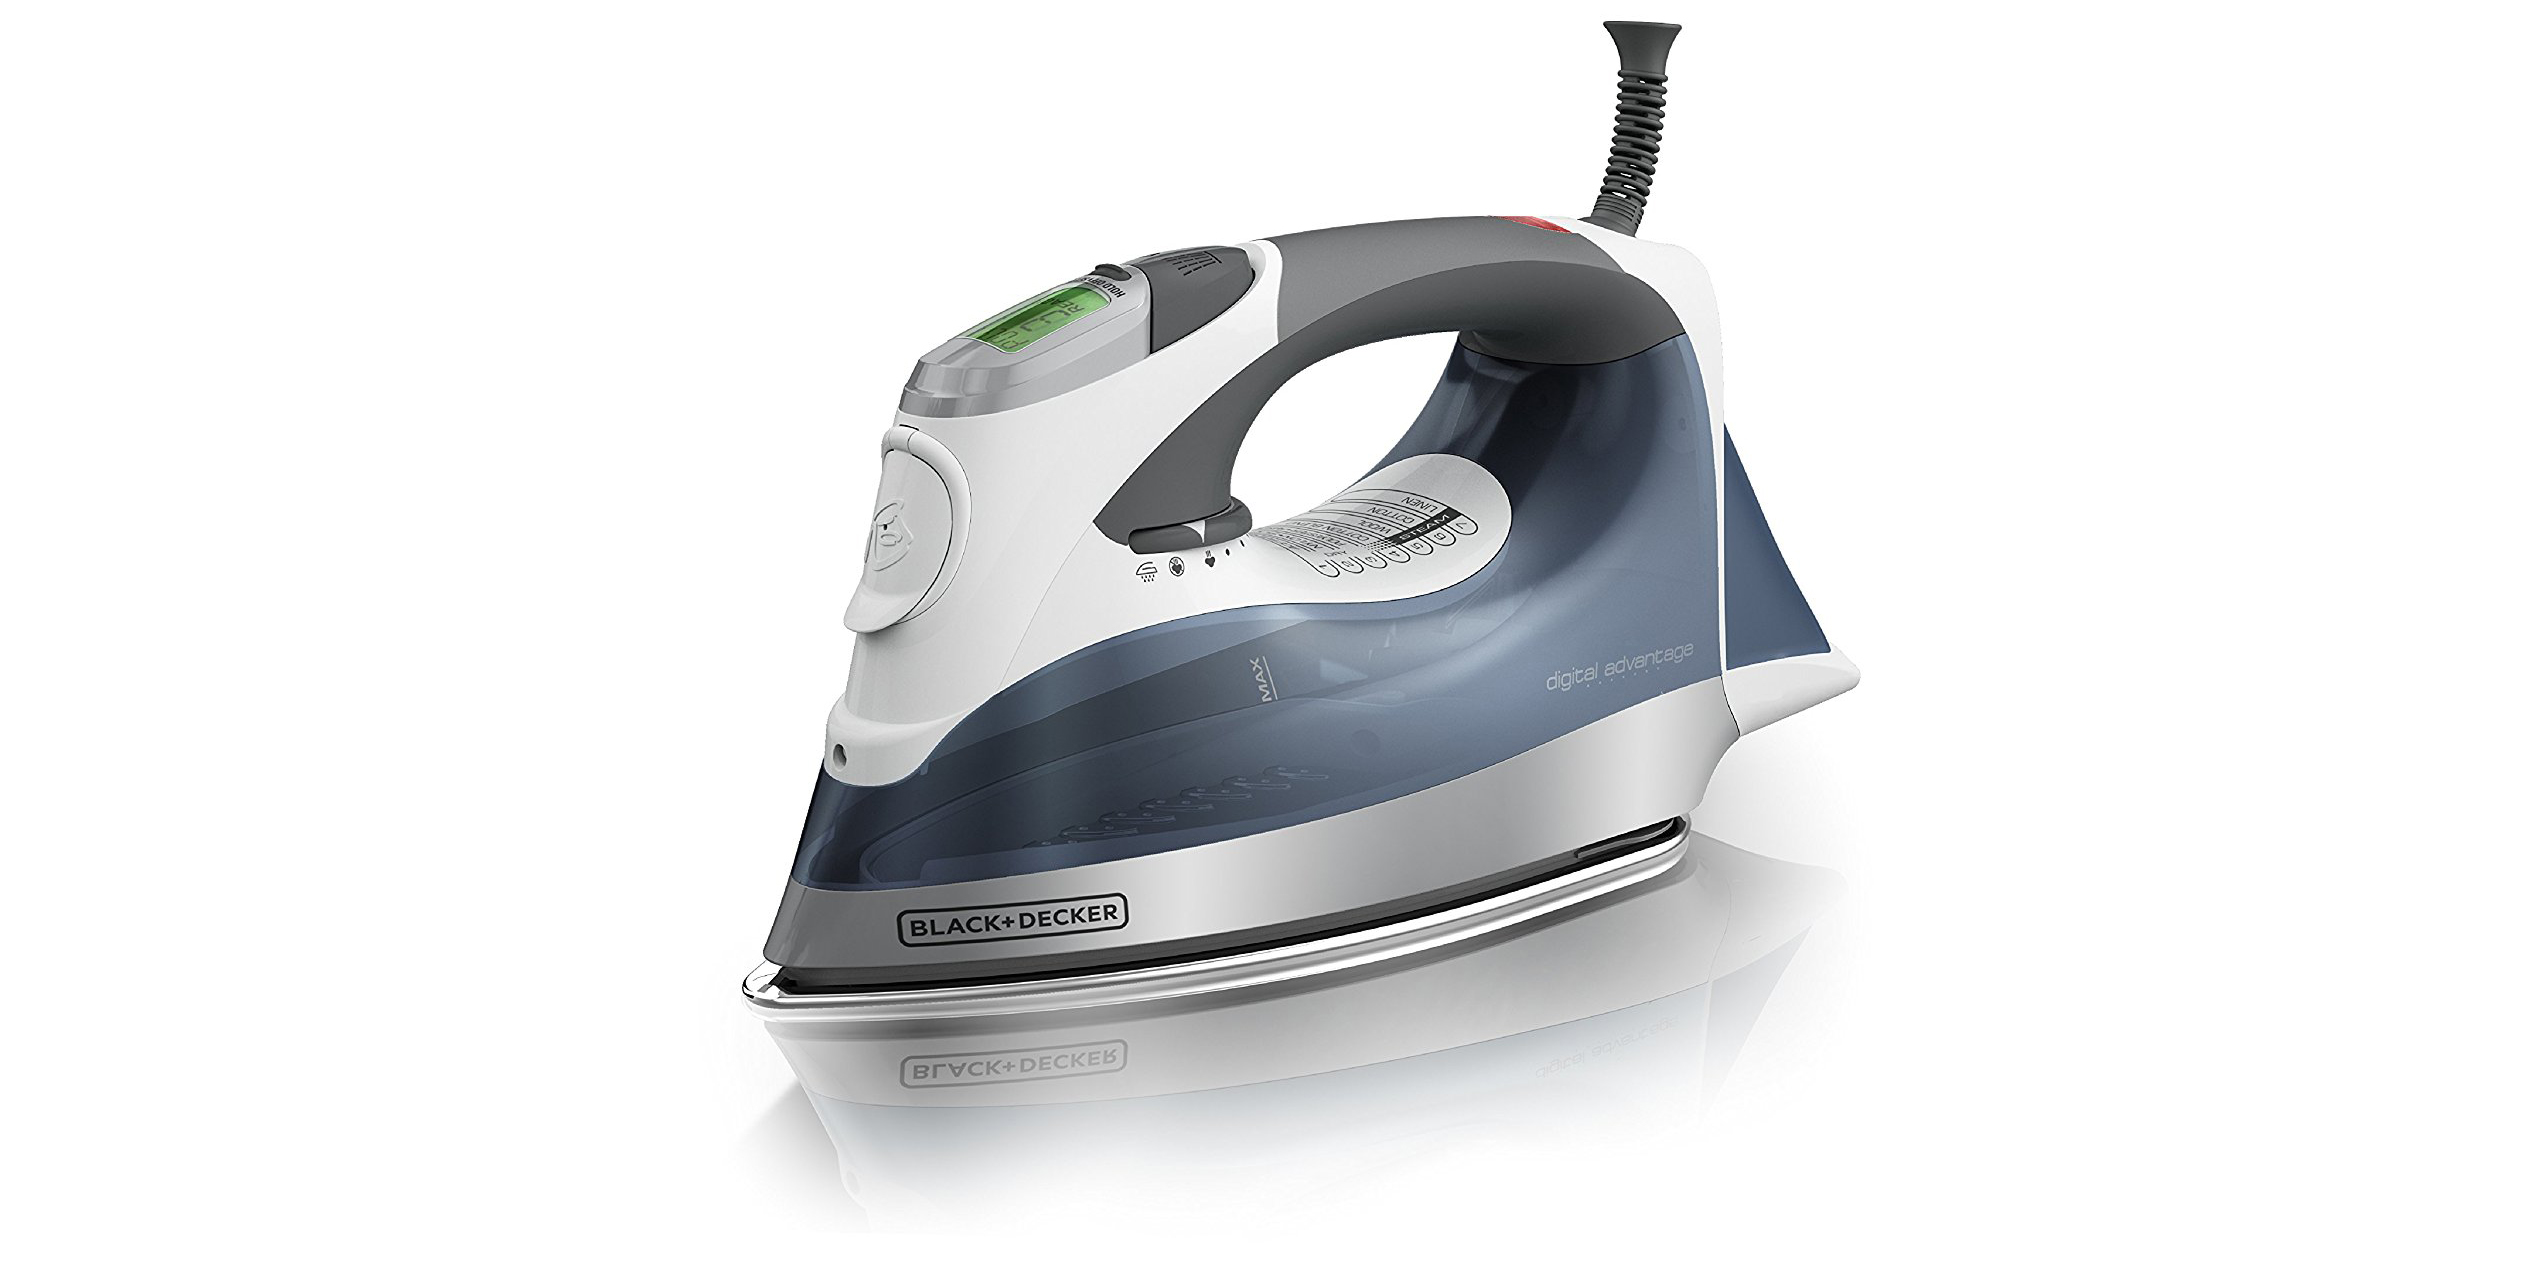 BLACK+DECKER Digital Steam Iron is top-rated and on sale at Amazon for $32